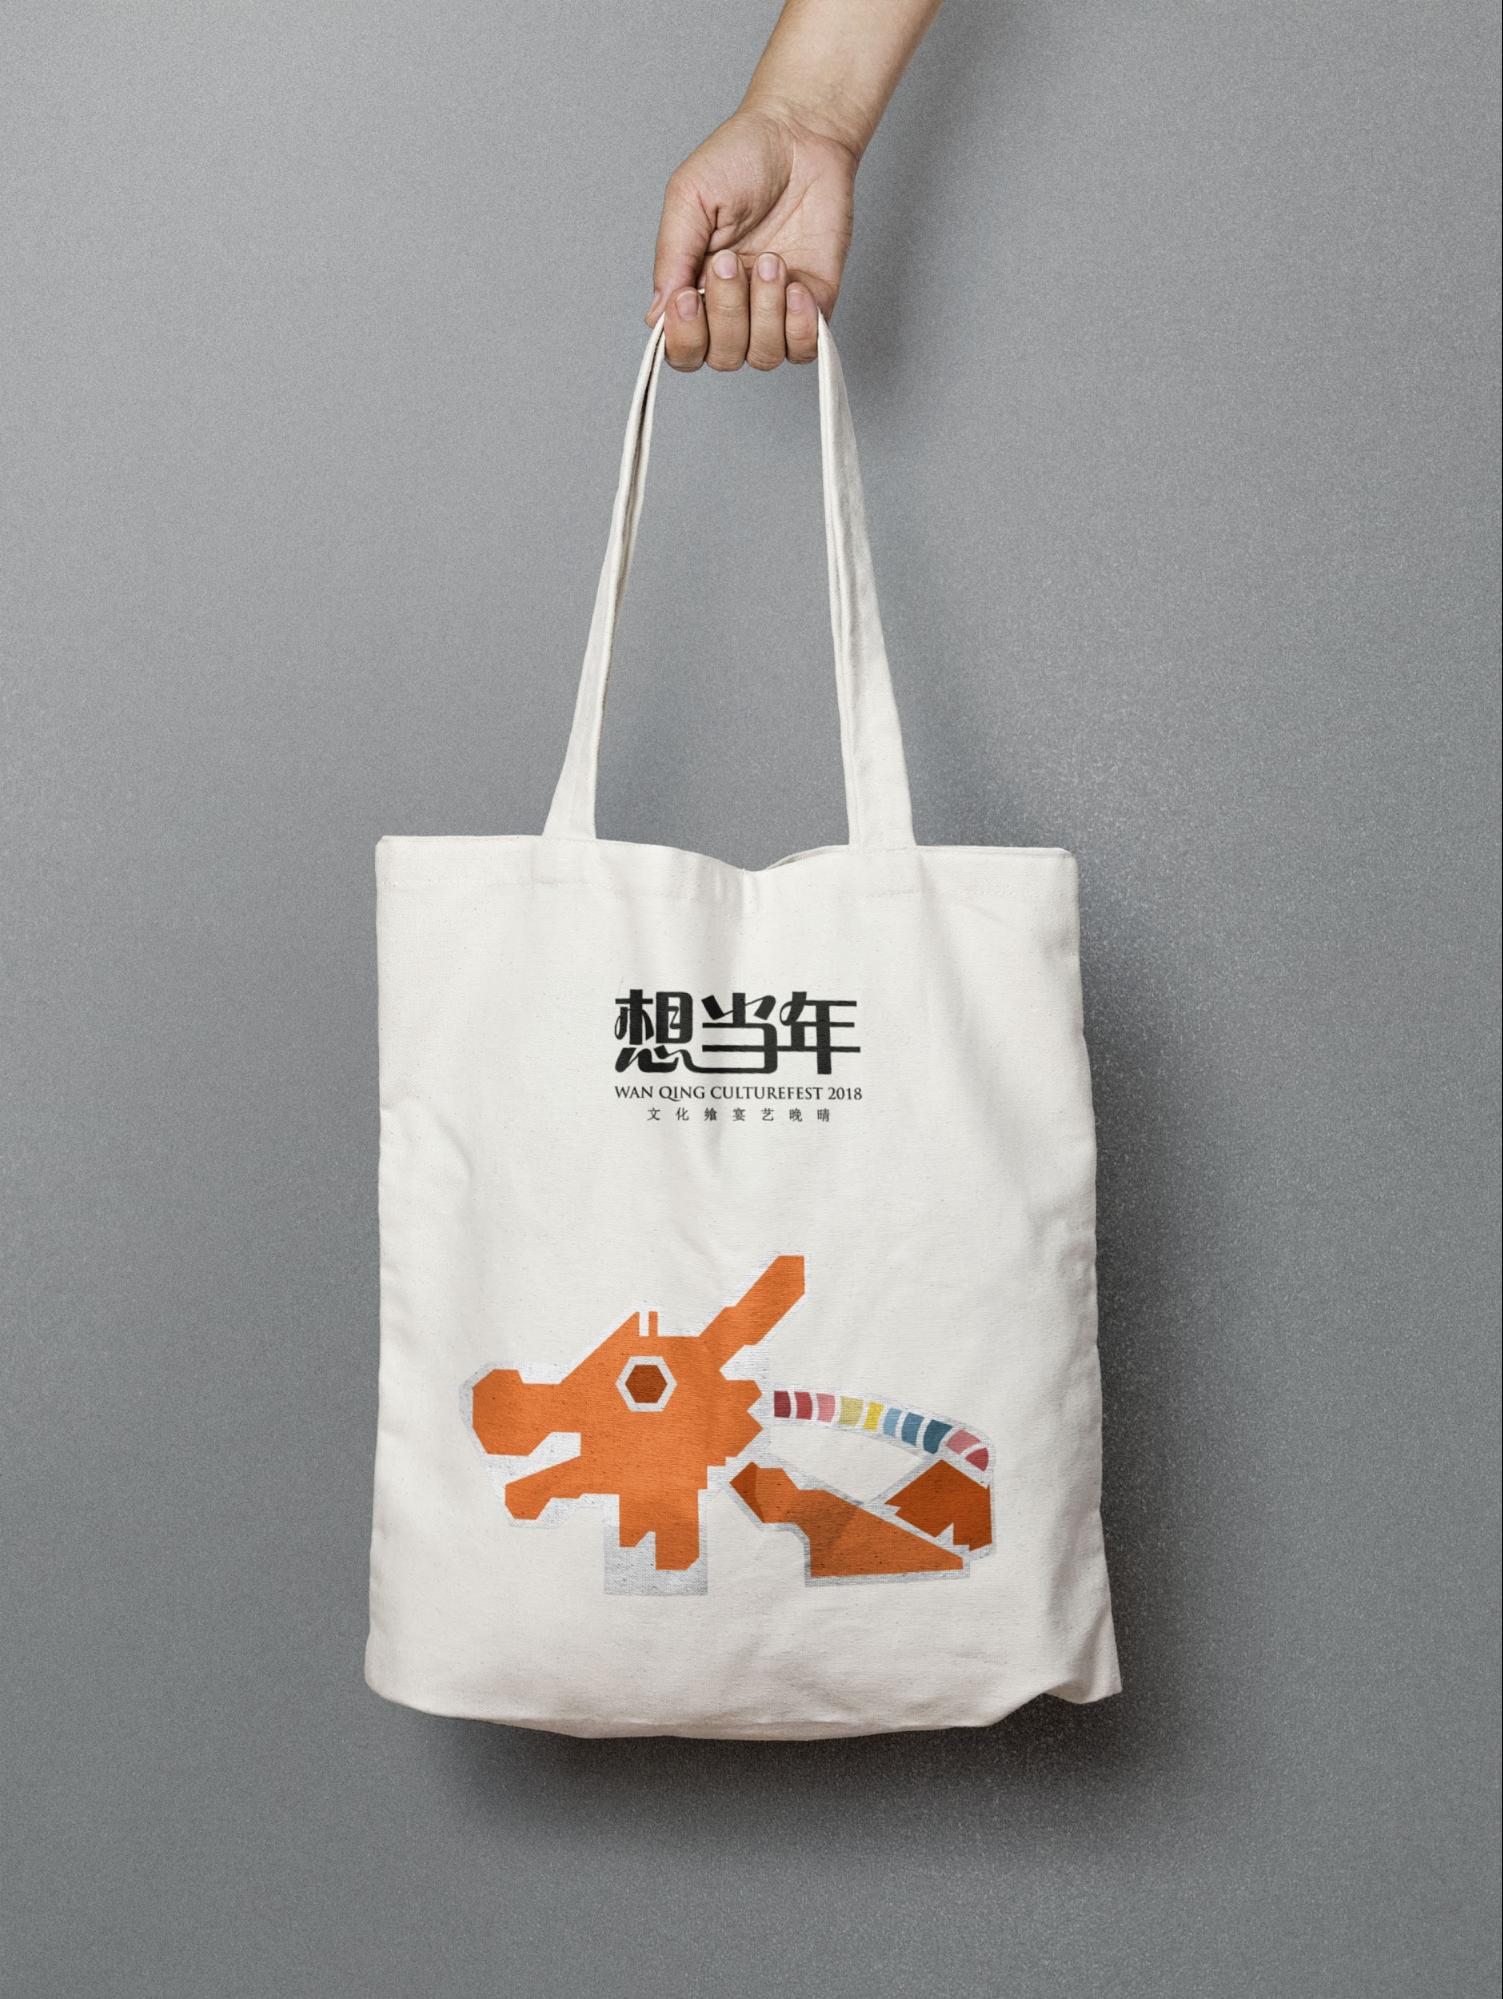 Wan Qing CultureFest 2018 - dragon playground tote bag